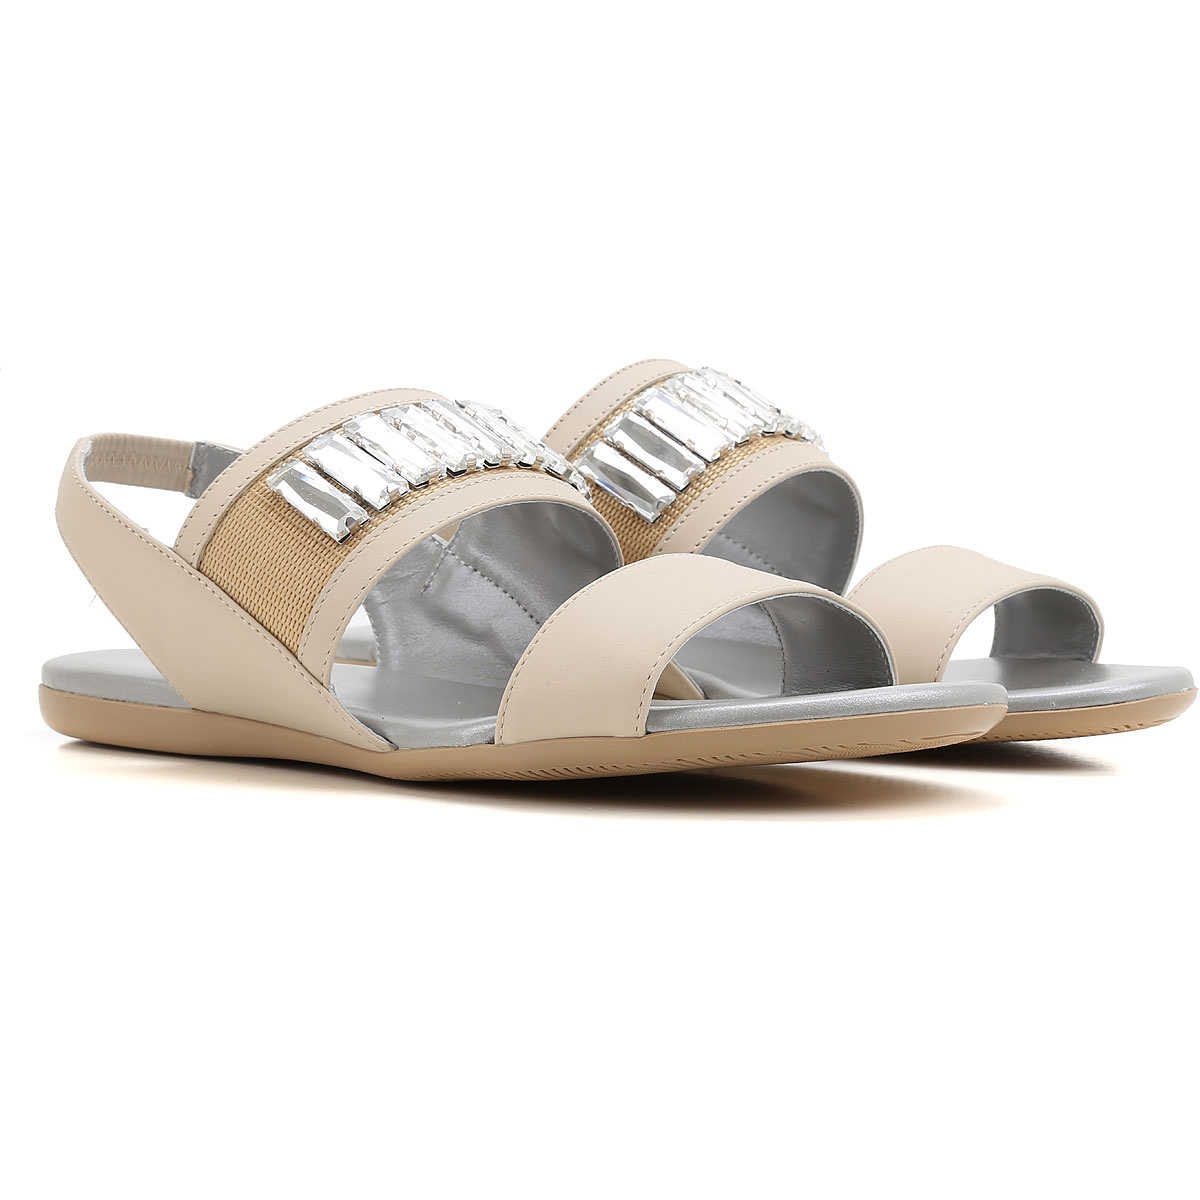 Hogan Sandals for Women On Sale in Outlet Turtledove DK - GOOFASH - Womens SANDALS